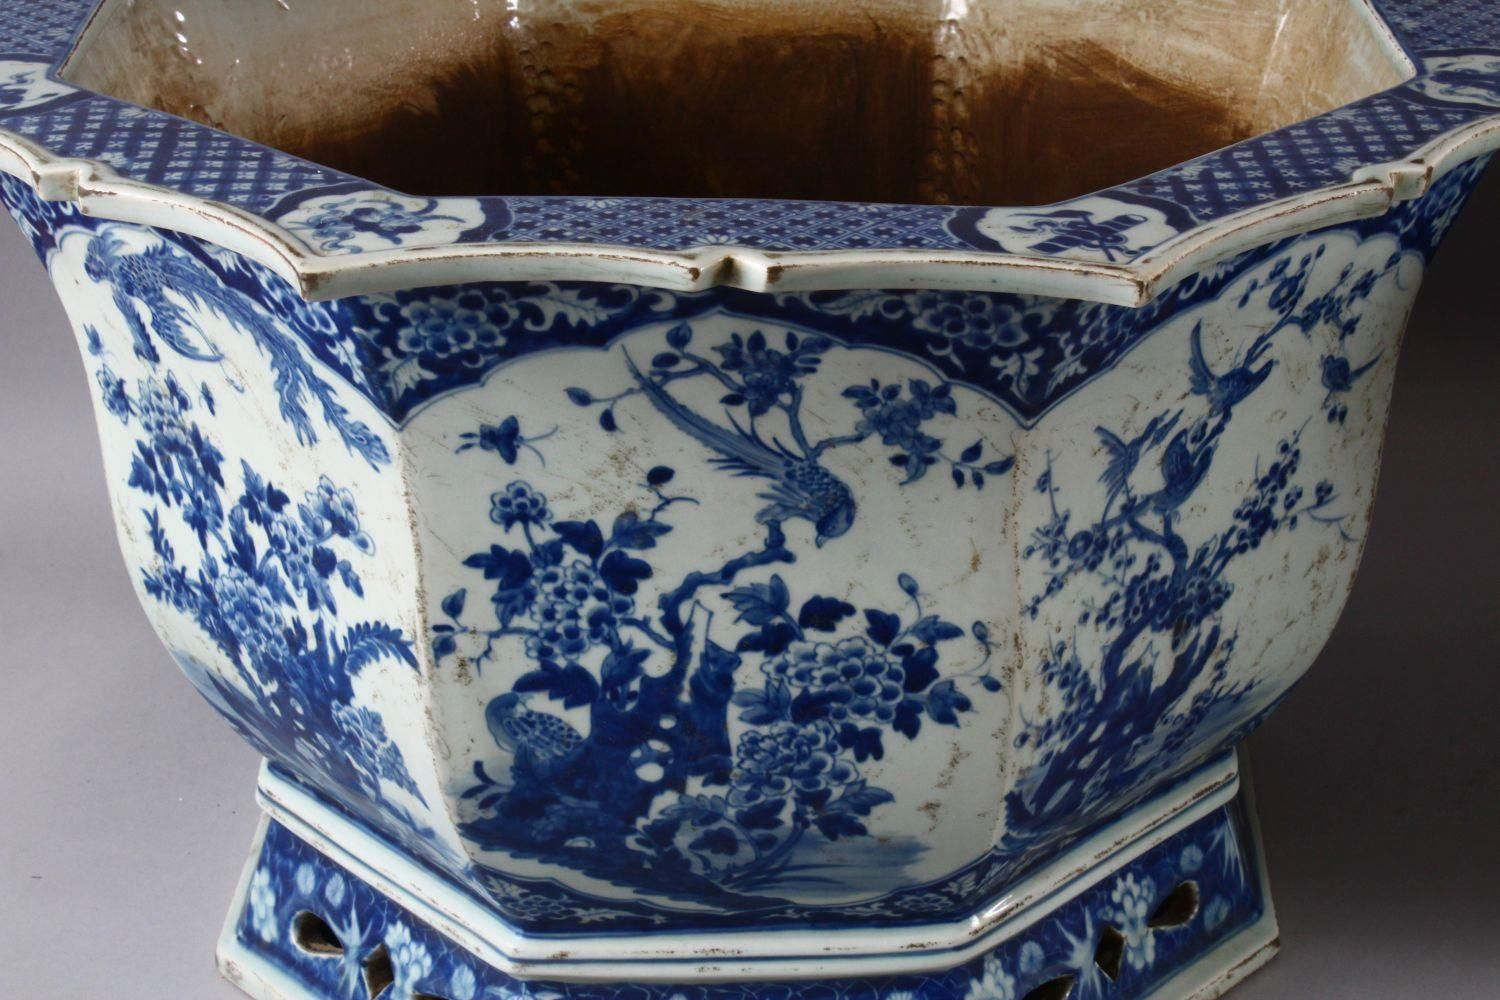 A PAIR OF LARGE CHINESE BLUE & WHITE OCTAGONAL PORCELAIN JARDINIERE / PLANTERS, decorated with - Image 3 of 8